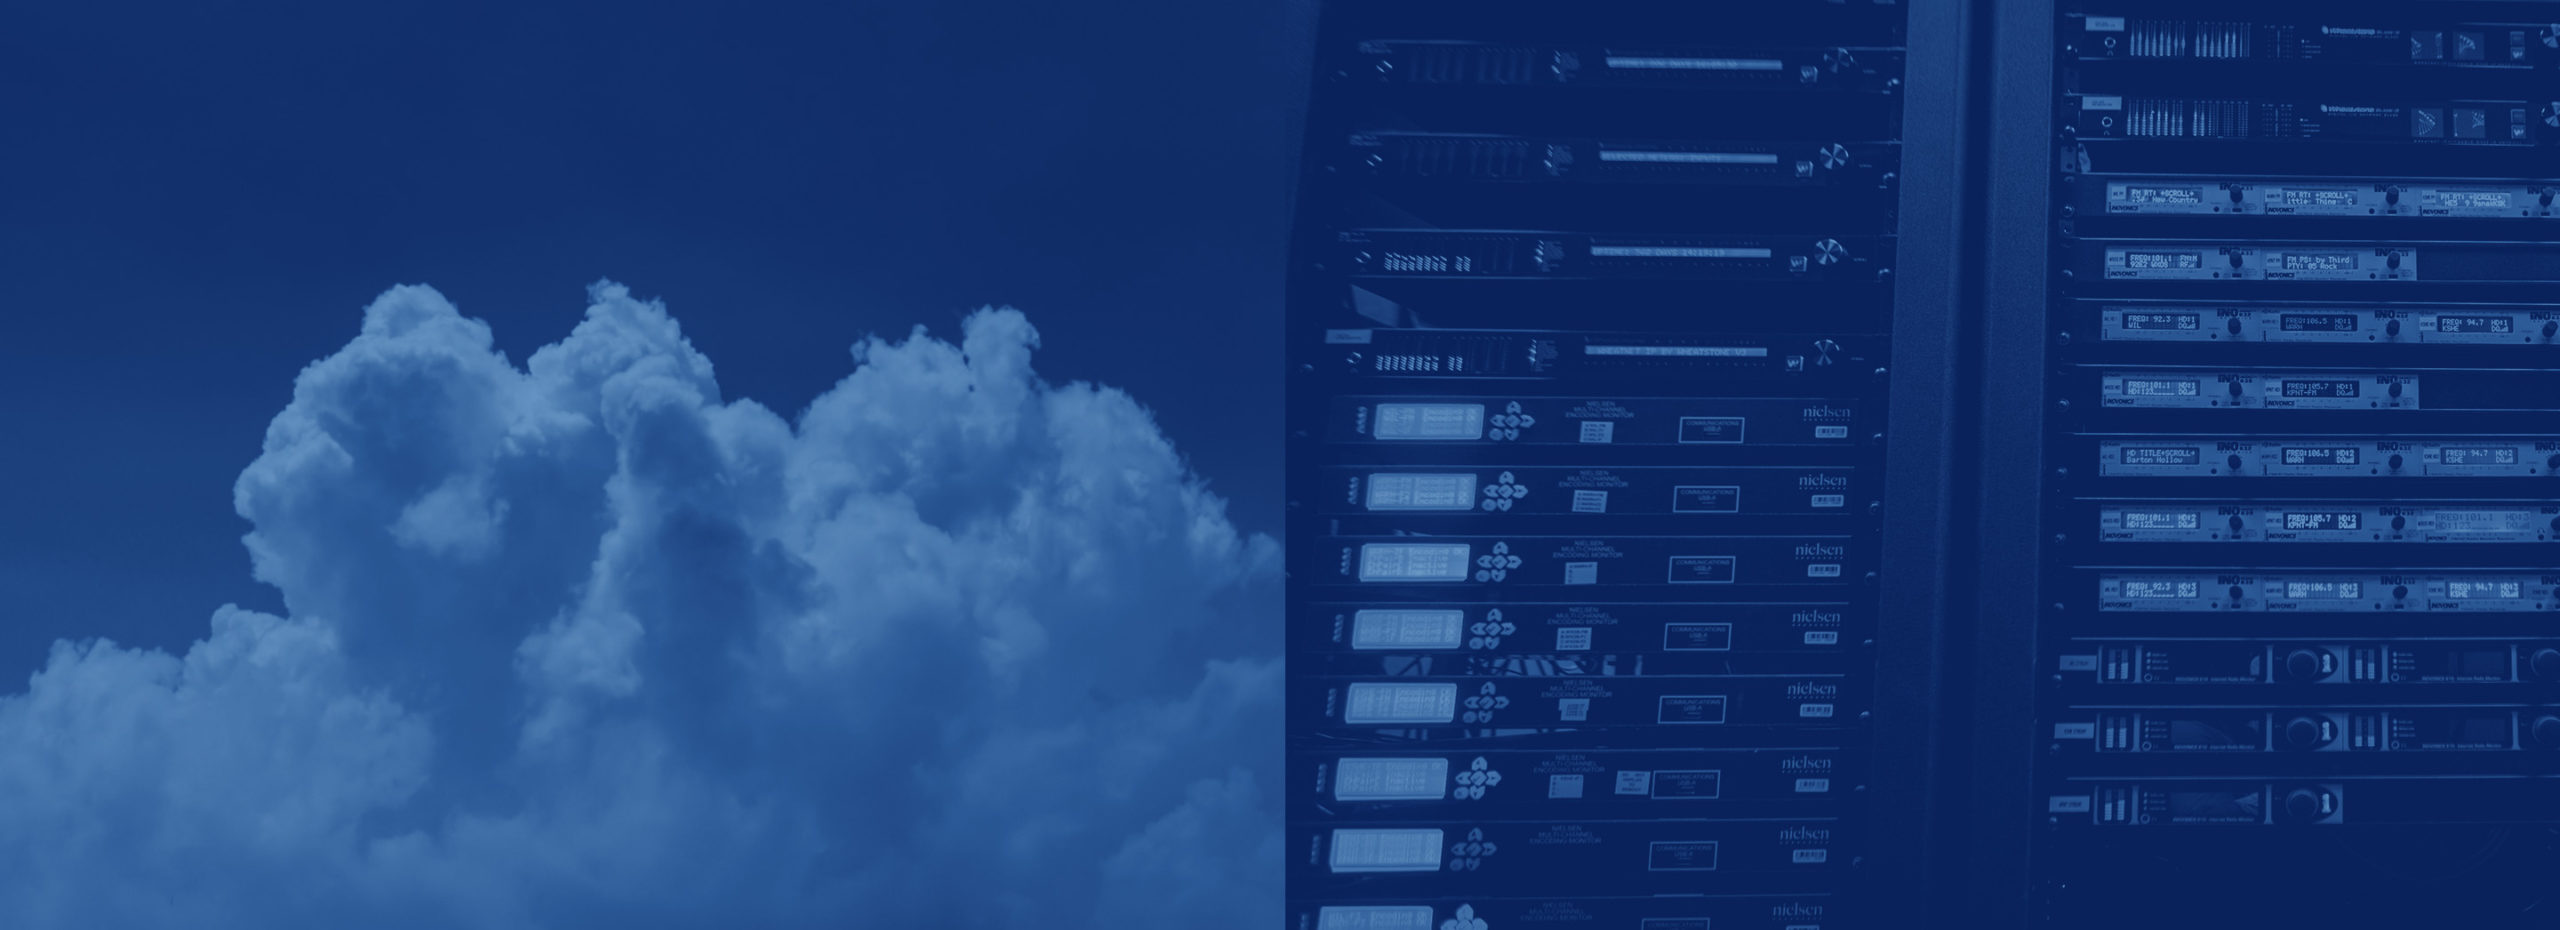 Cloud vs. On-Premises Software: What Are the Key Differences?